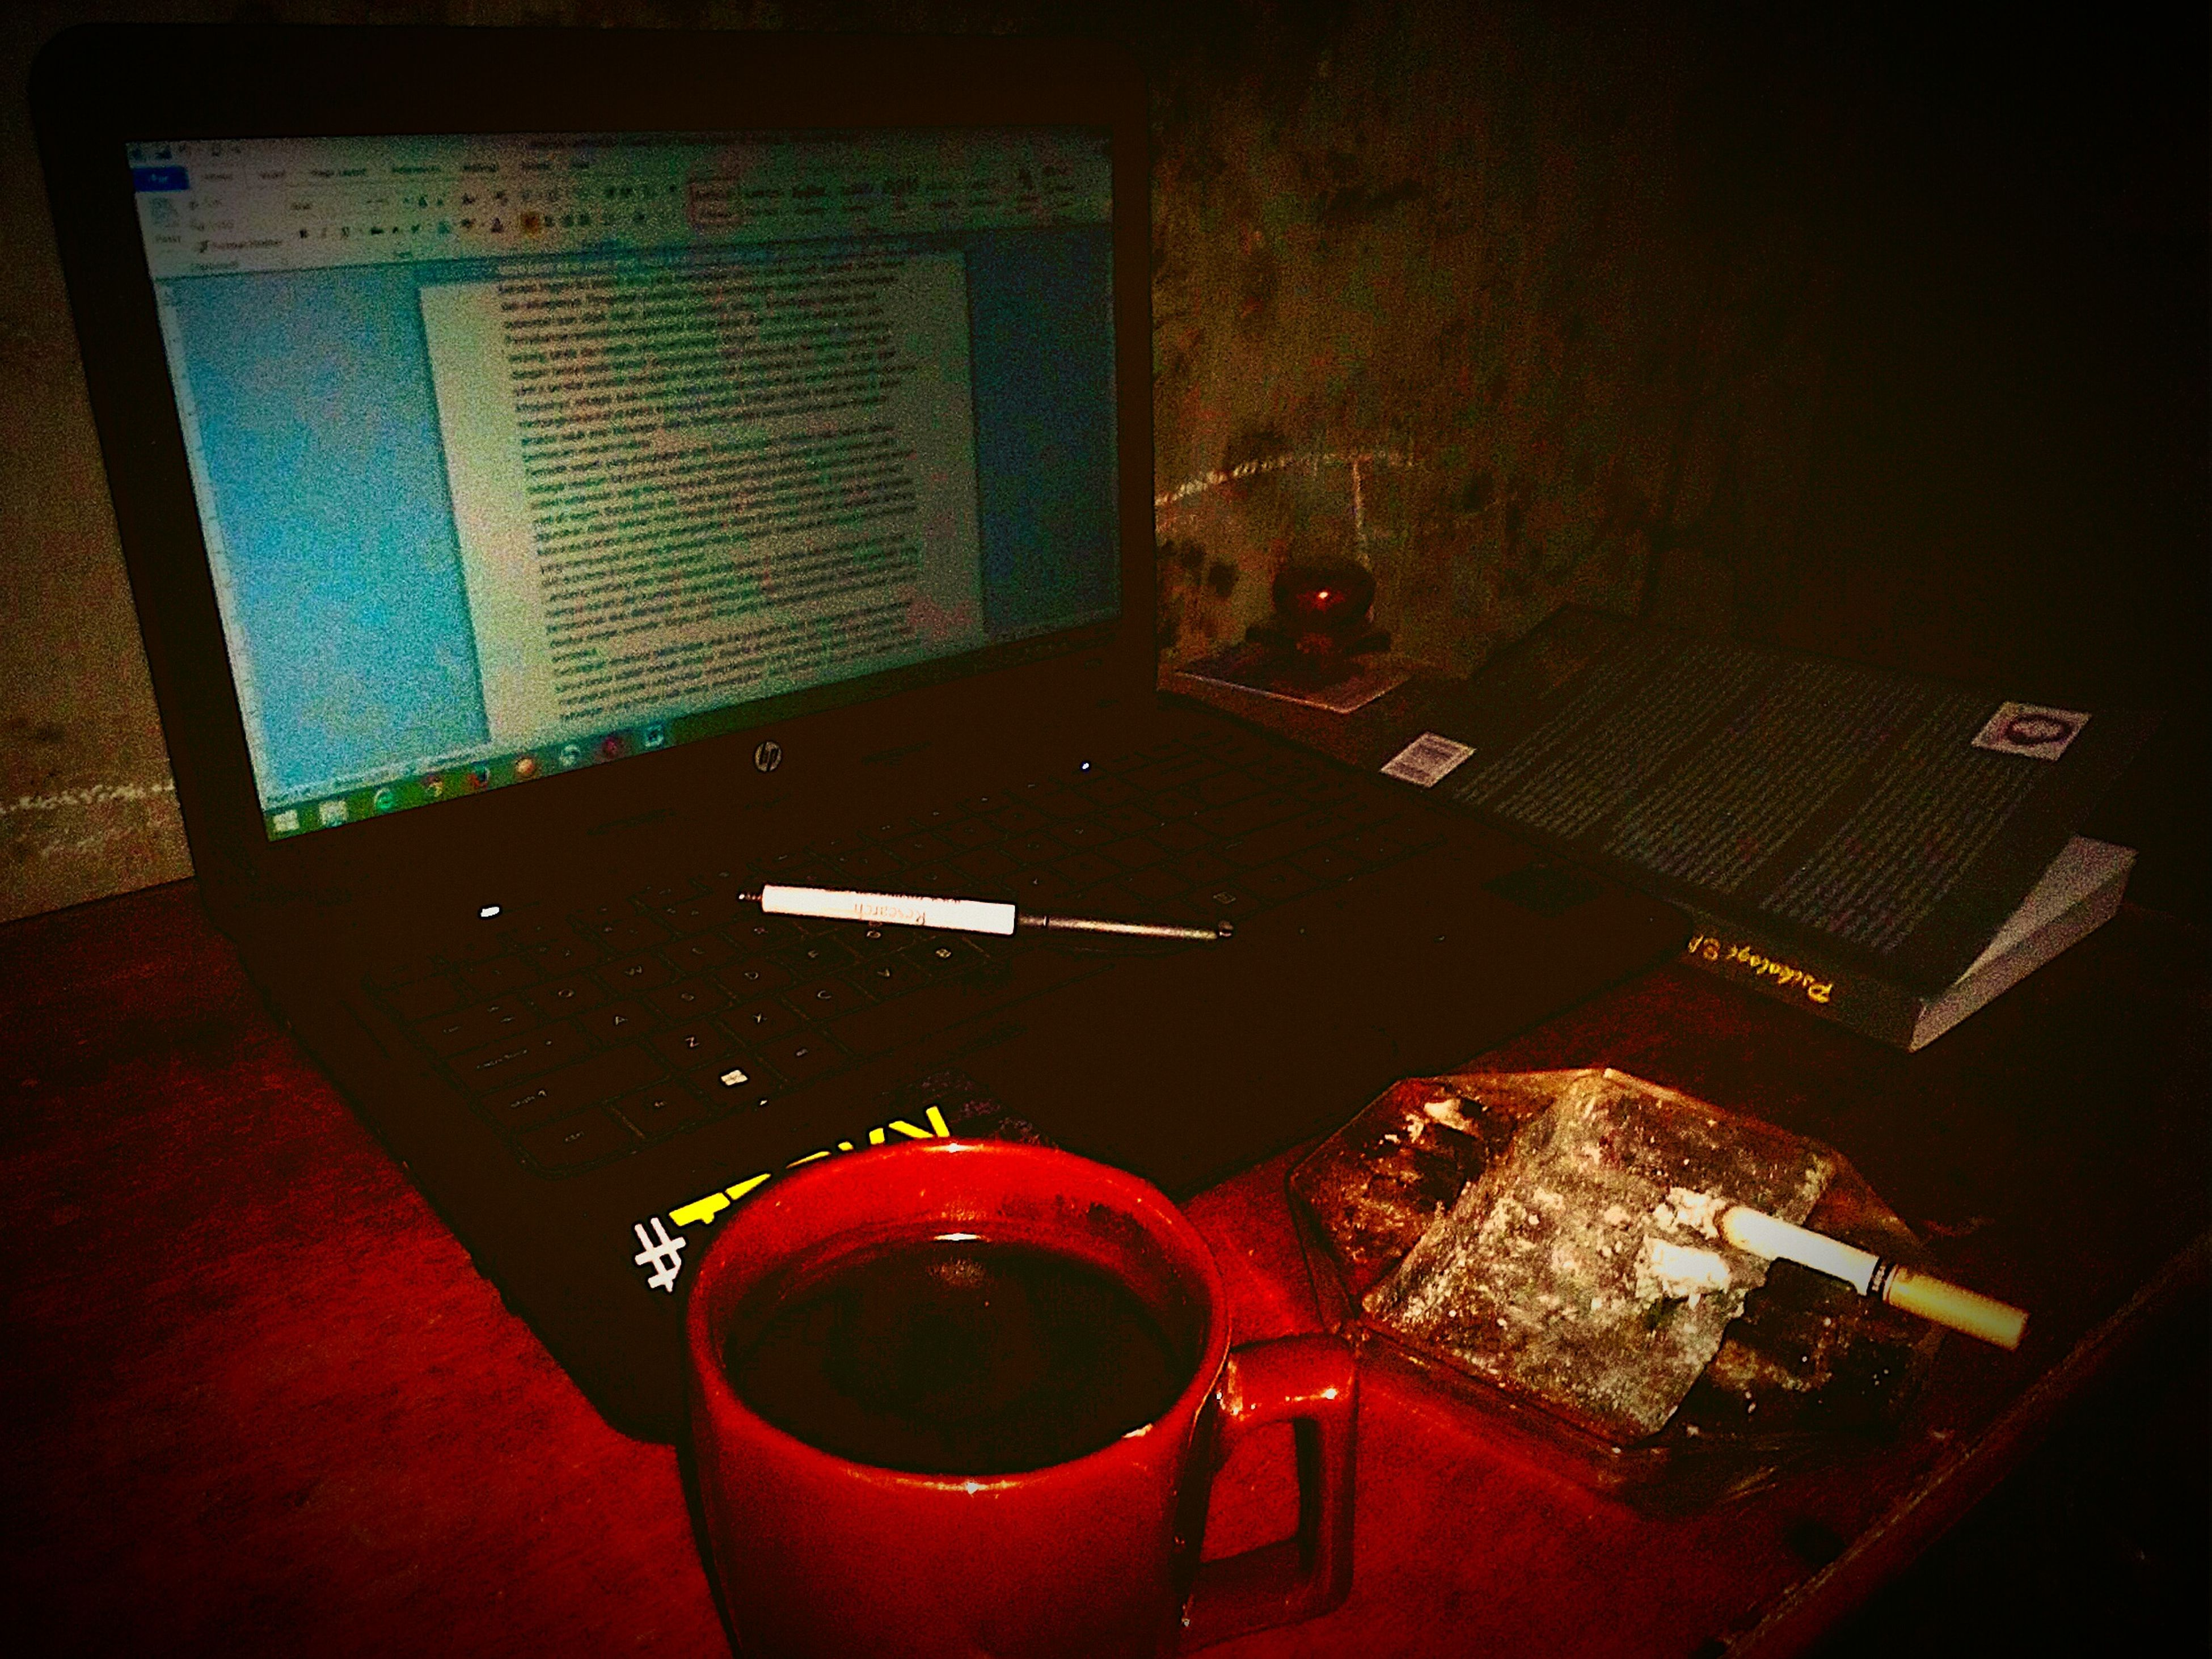 indoors, table, communication, high angle view, technology, still life, transfer print, red, auto post production filter, illuminated, wireless technology, home interior, close-up, no people, text, connection, absence, western script, chair, laptop